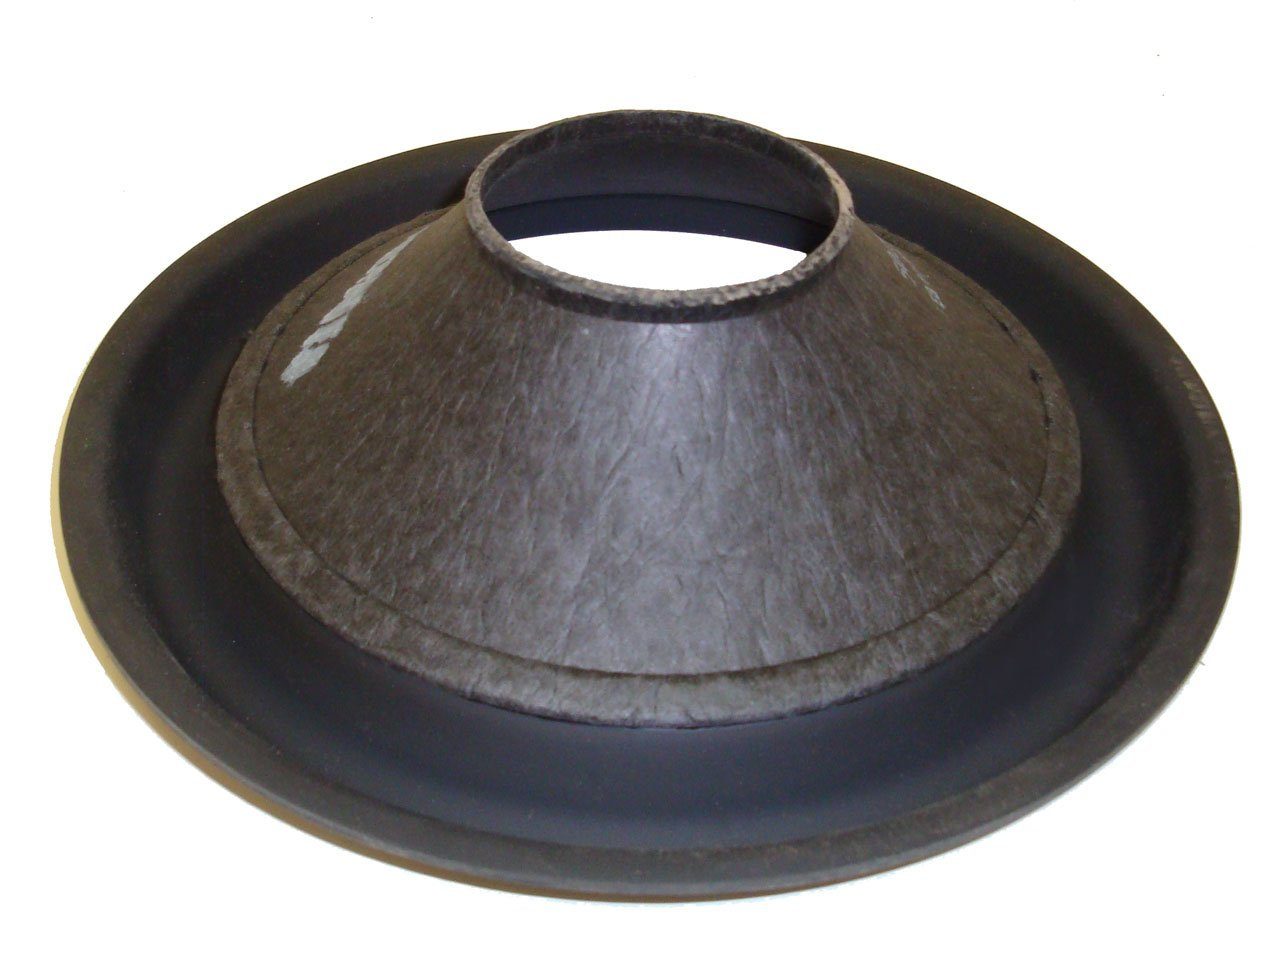 12 Genuine Rockford Fosgate T1 Series Kevlar Pulp Subwoofer Cone with Tall Heavy-Duty Rubber Surround